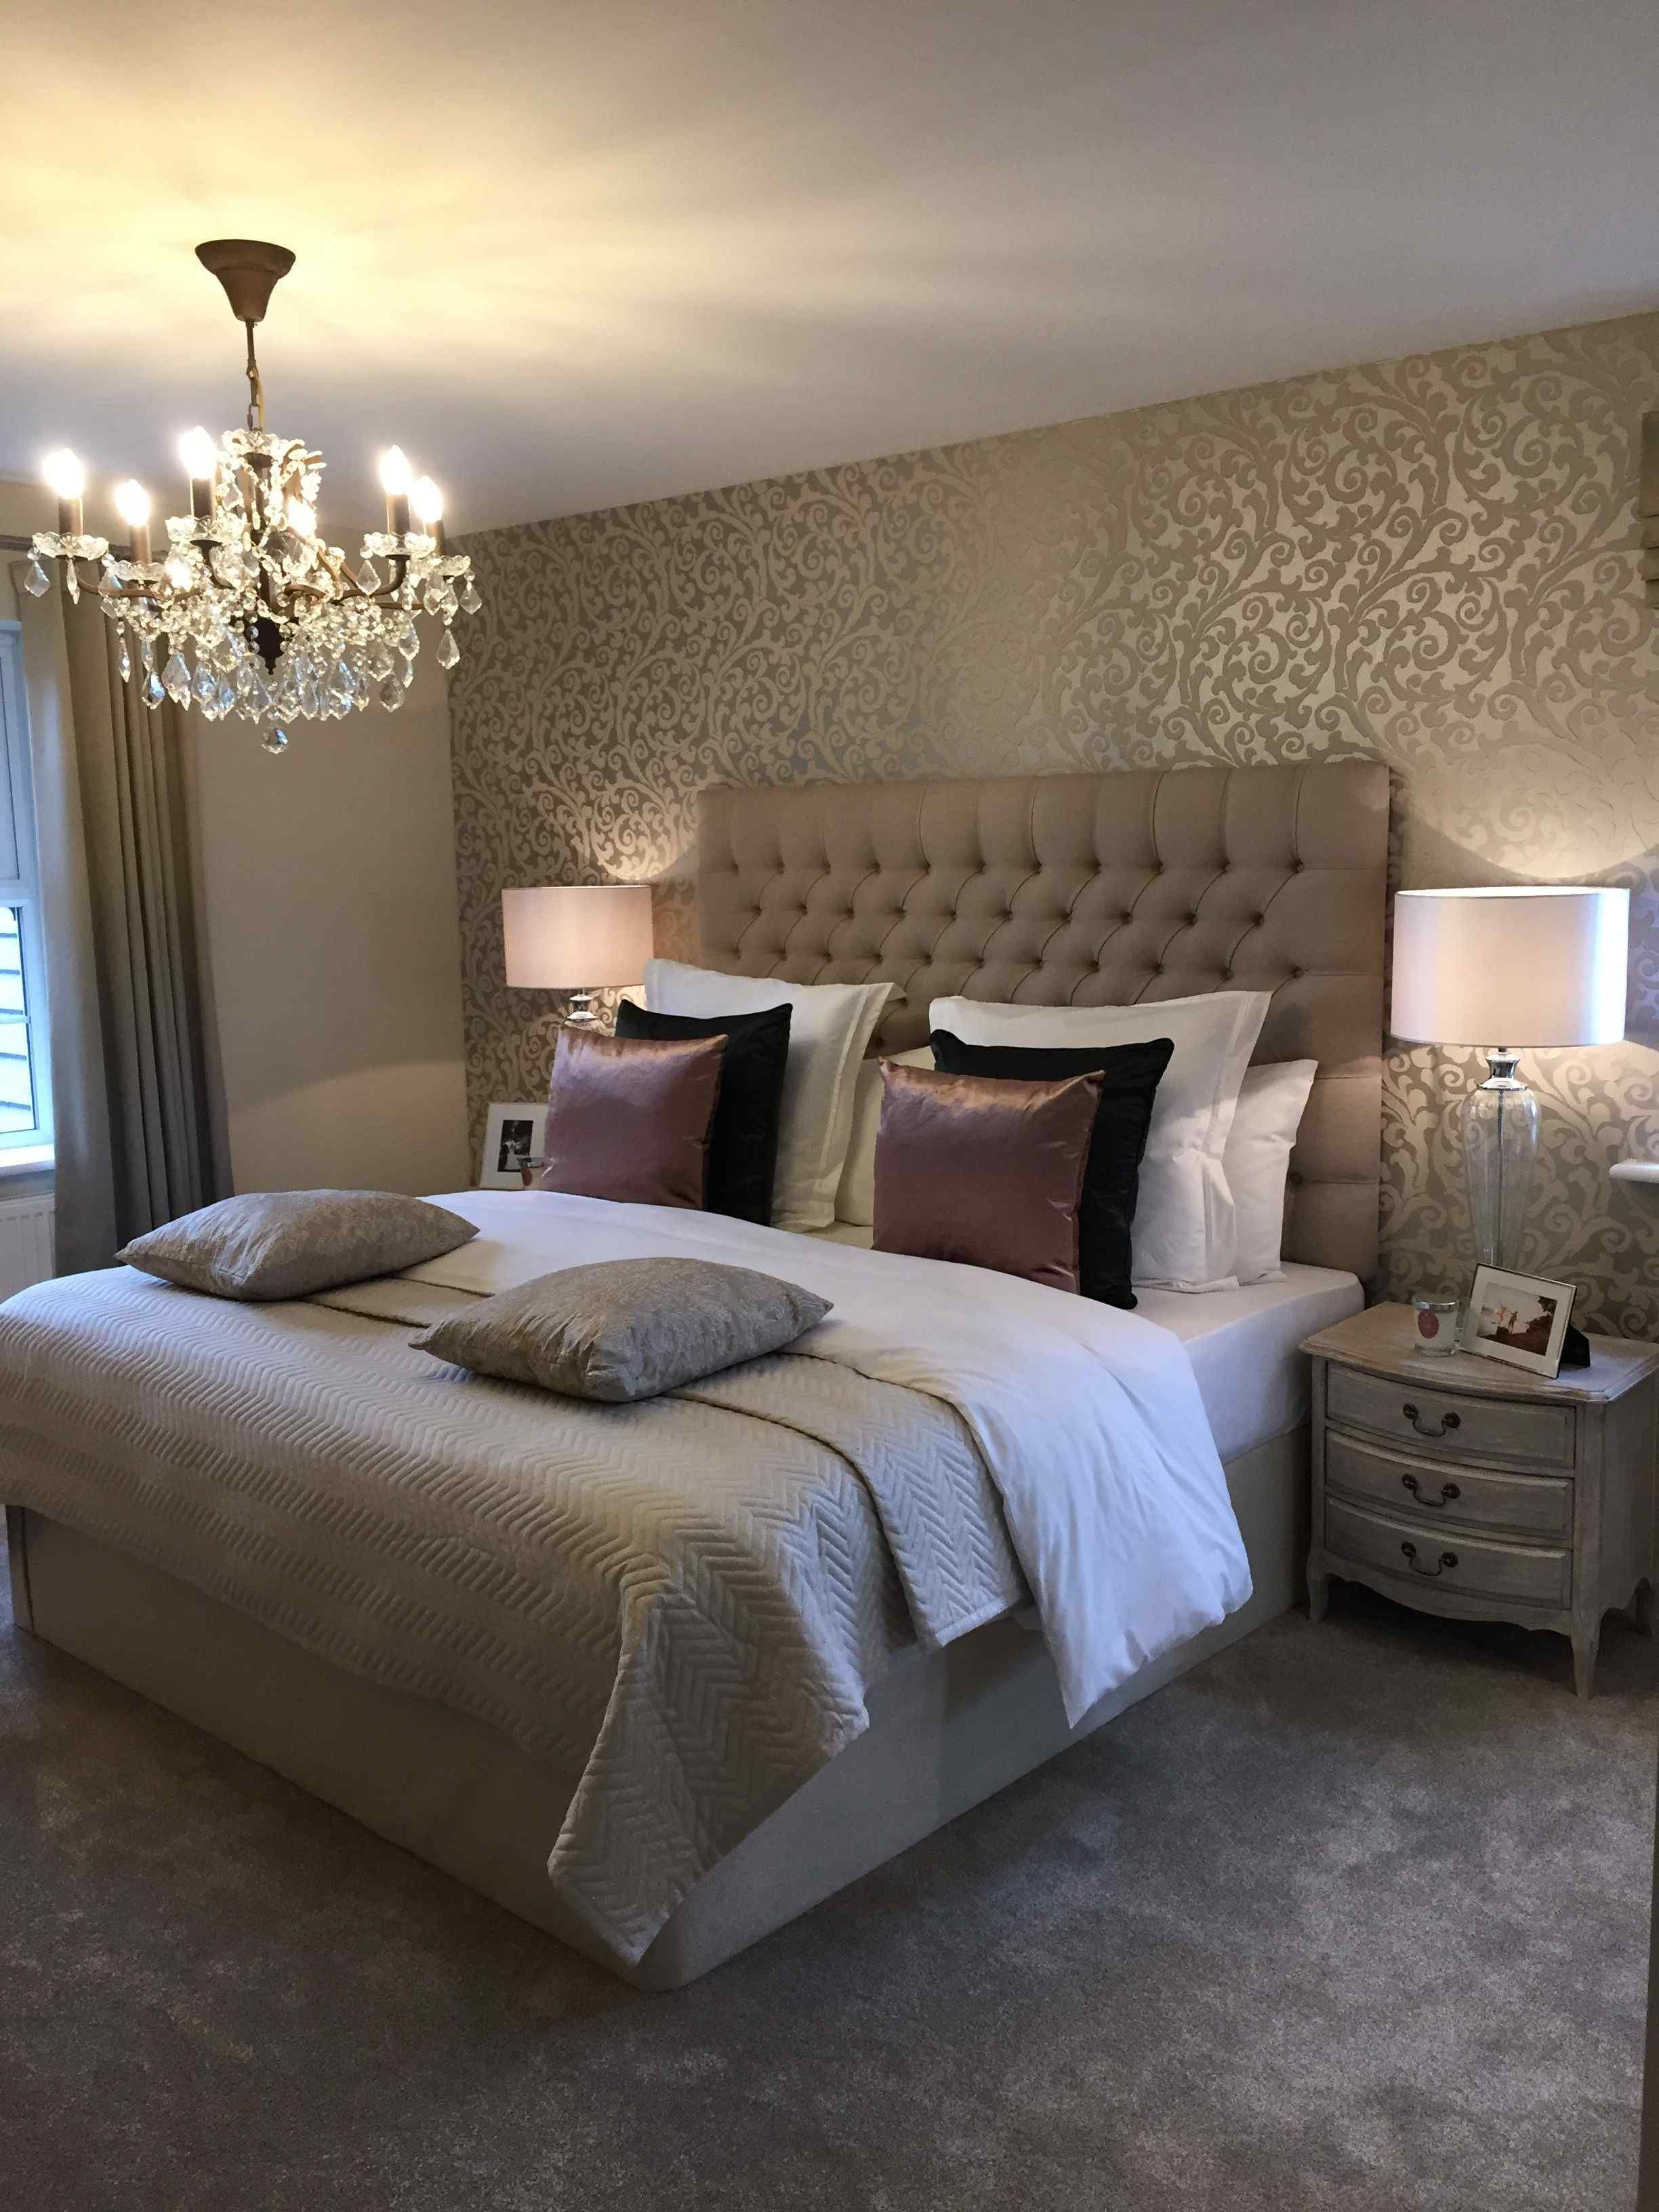 Pin By Khadia Bennett On Bilal Ahmed Couples Master Bedroom Simple Bedroom Master Bedrooms Decor